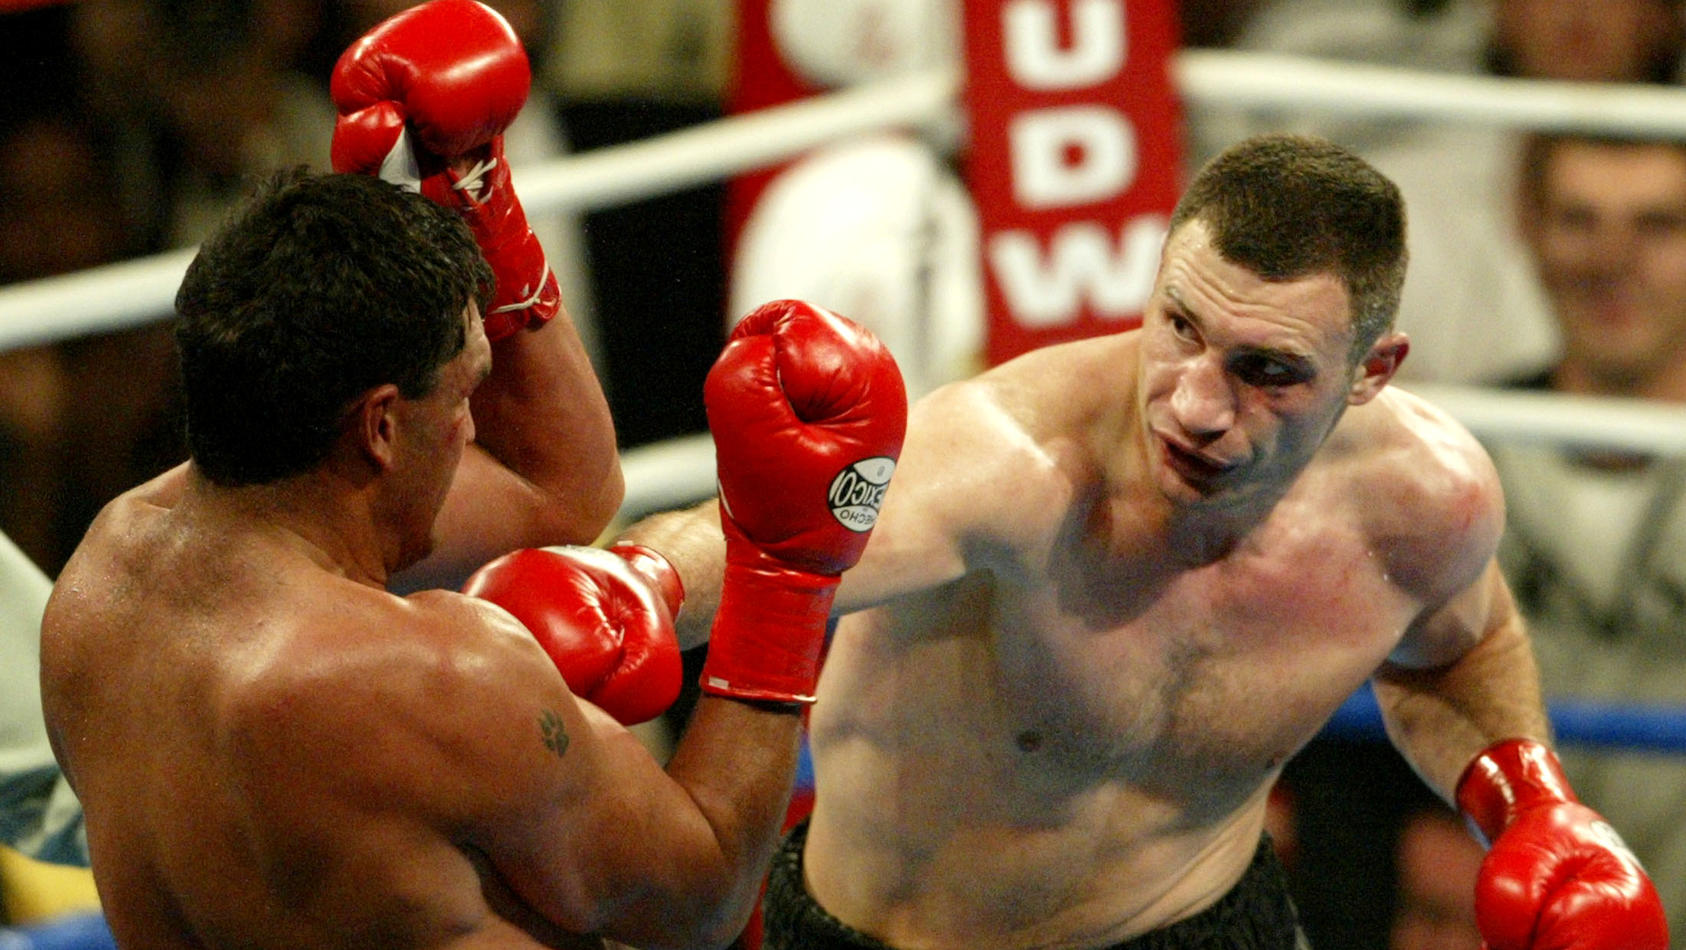 FILE PHOTO: Ukraine's Vitali Klitschko lands a right hand on South Africa's Corrie Sanders en route to an eighth round technical knockout victory that gave him the vacant WBC and The Ring heavyweight titles at Staples Center, Los Angeles.